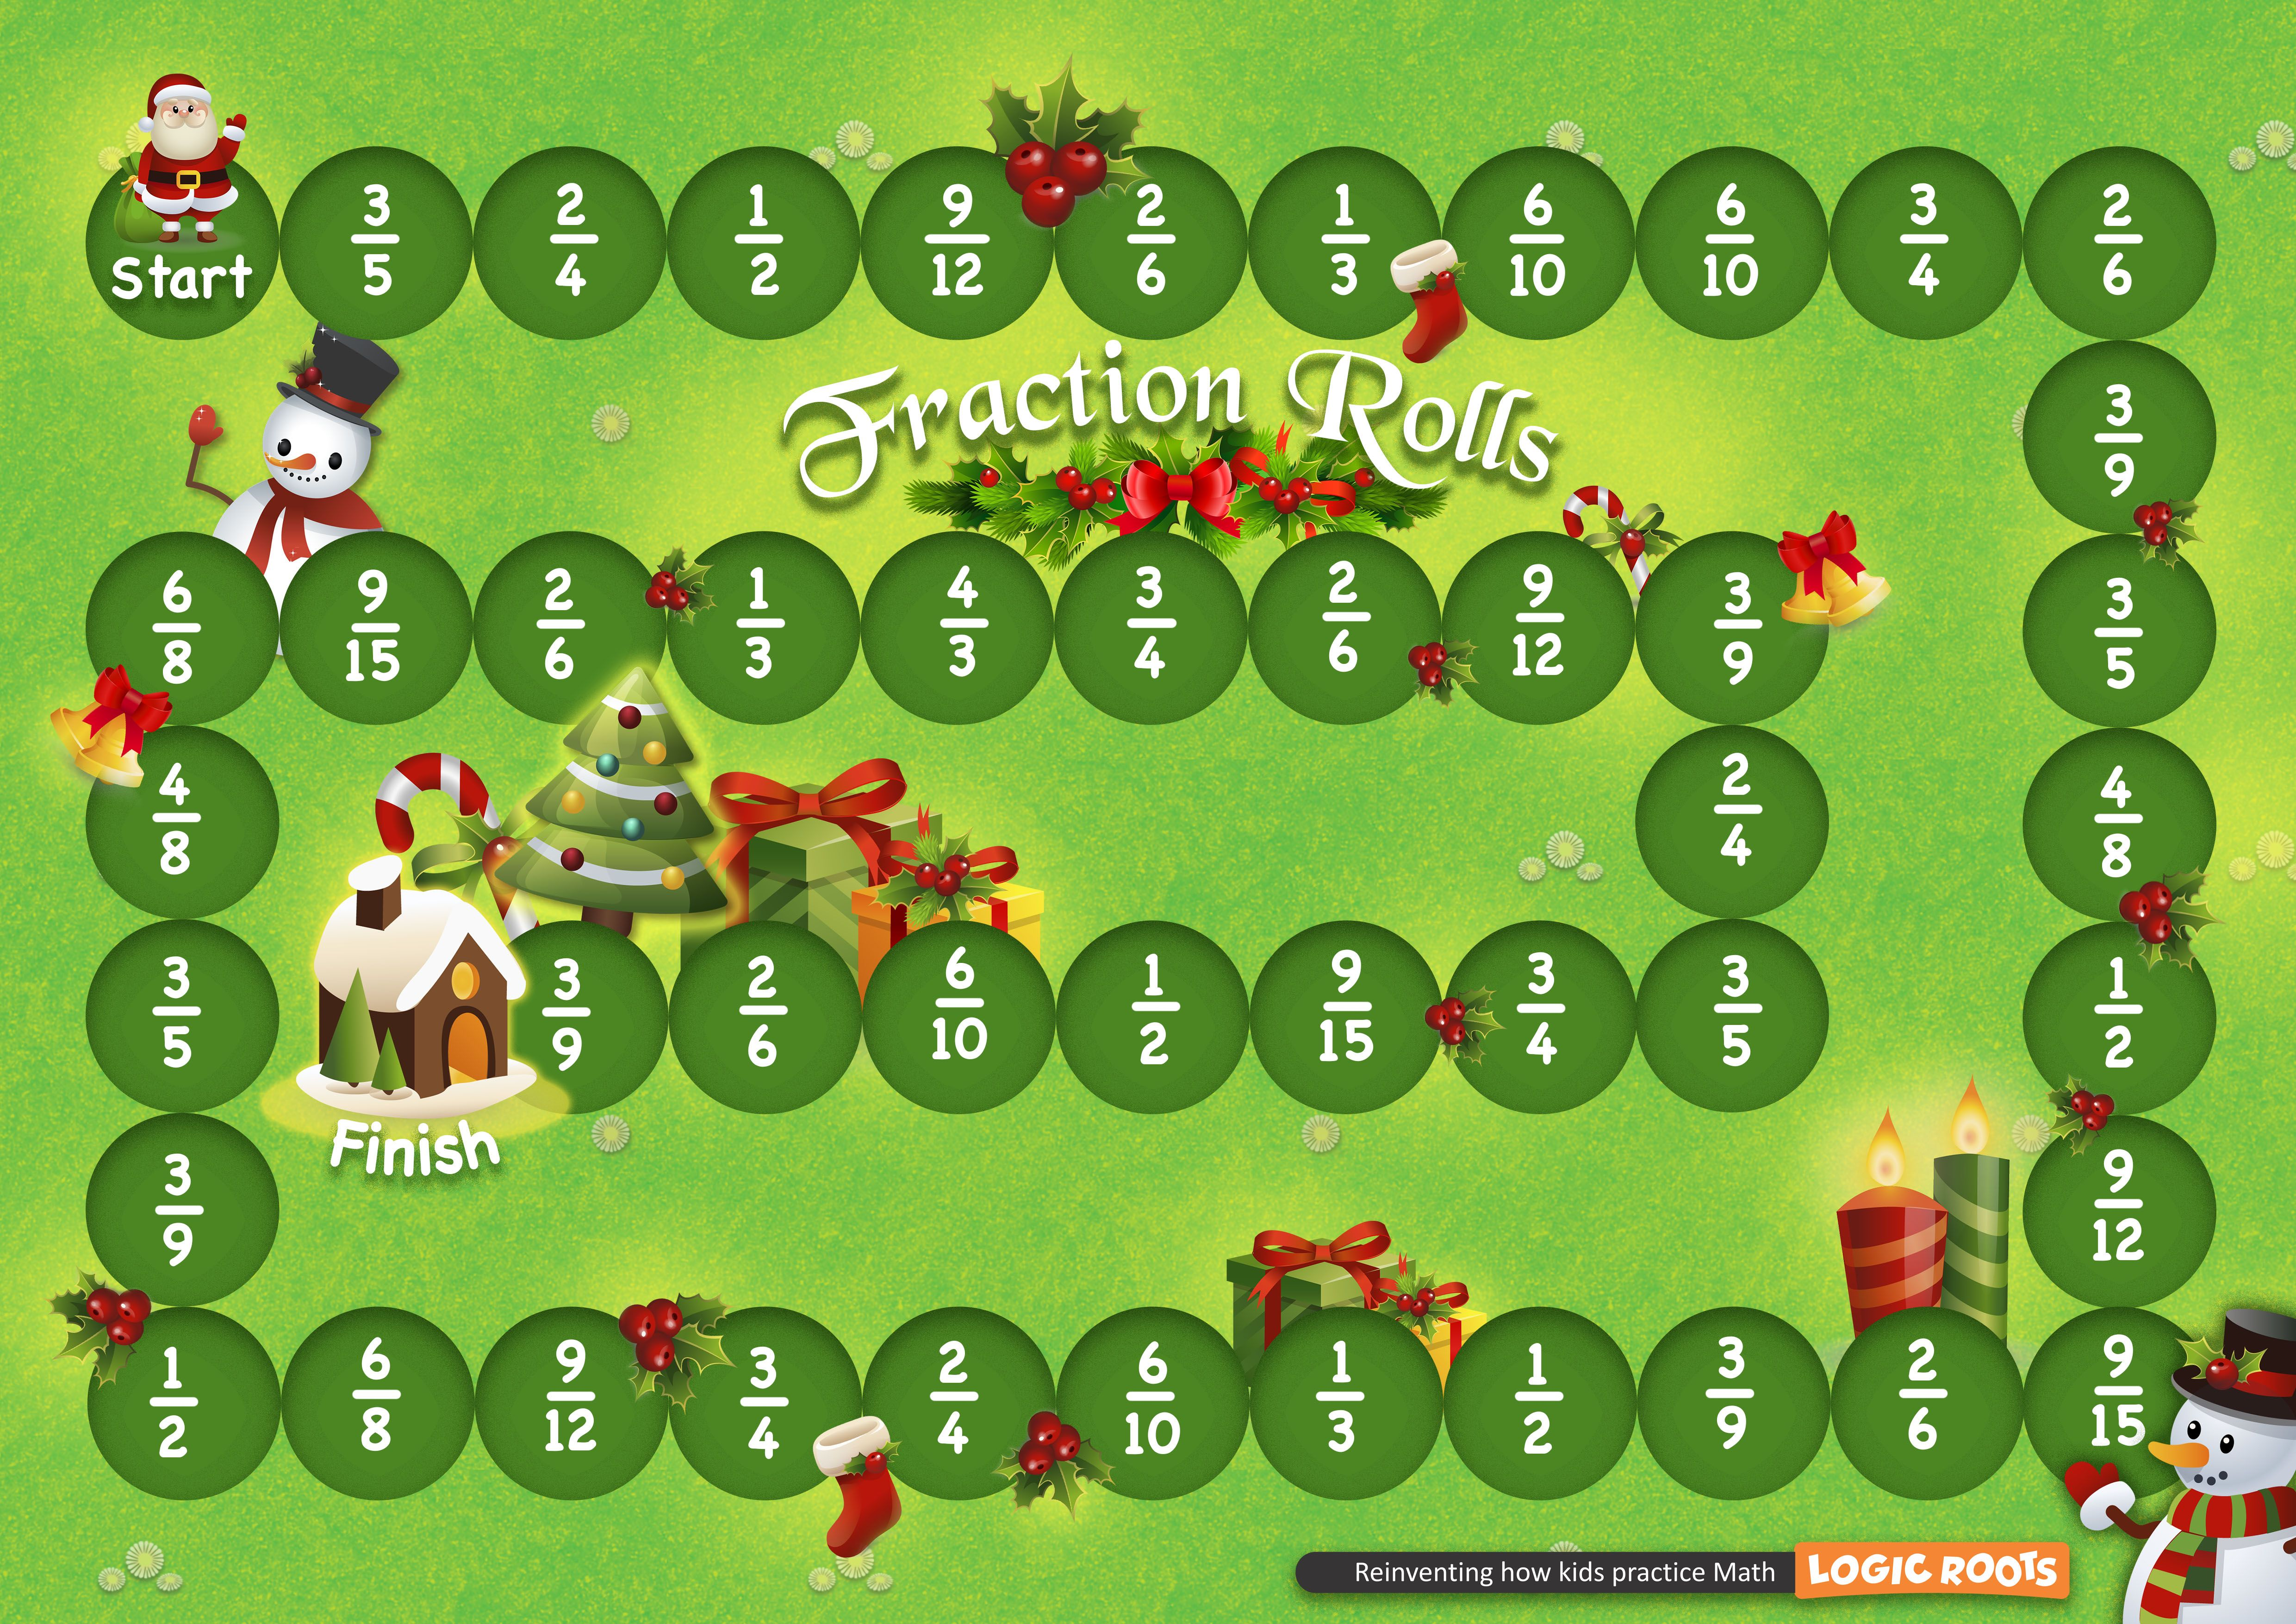 image about Free Printable Fraction Games referred to as Absolutely free Xmas Printable Math Sport - Fractions Roll Math